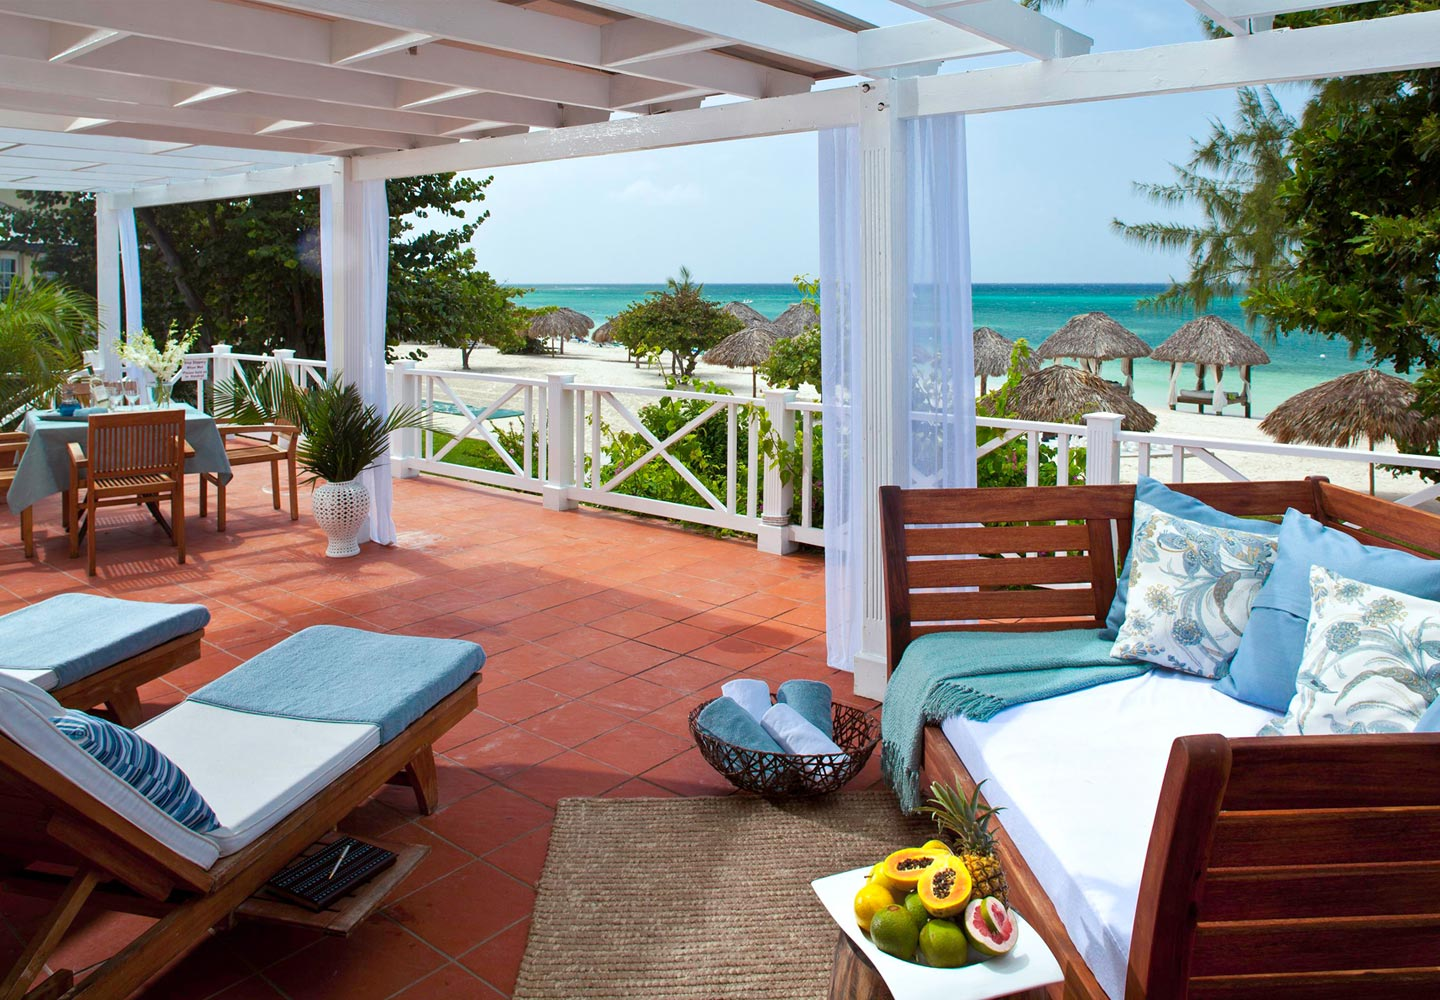 Travel Agency All-Inclusive Resort Sandals Montego Bay 092